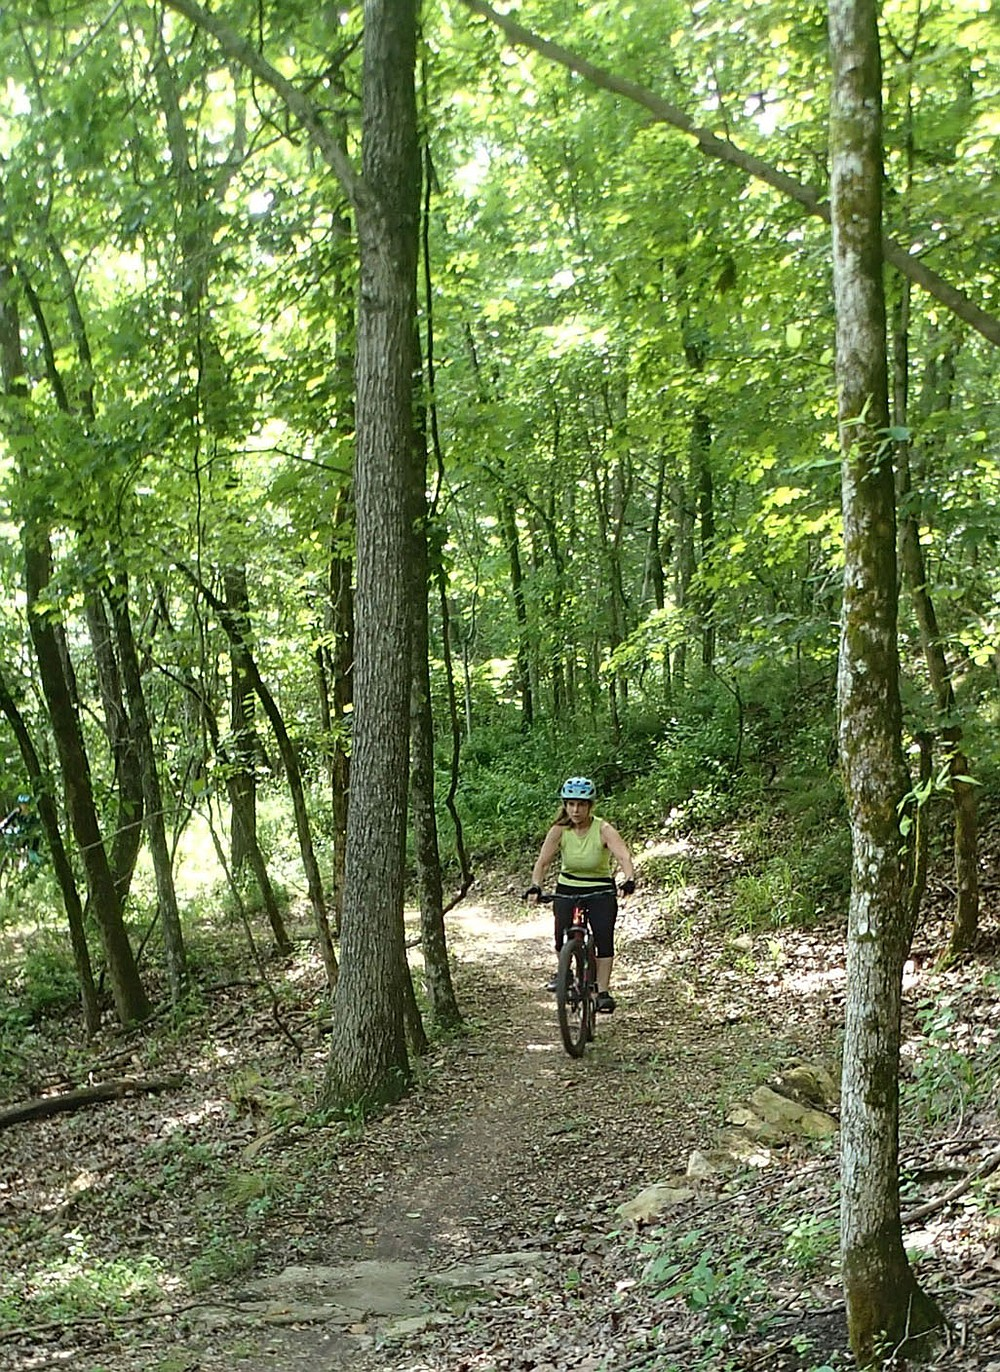 """SueEllen Novick cruises through the forest June 11 2021 on the Marble Flats trails minutes from downtown Eureka Springs. Novick samples the """"Beauty Is Everywhere"""" loop that guides riders past rock formations, a skills area and acres of woods. (NWA Democrat-Gazette/Flip Putthoff)"""